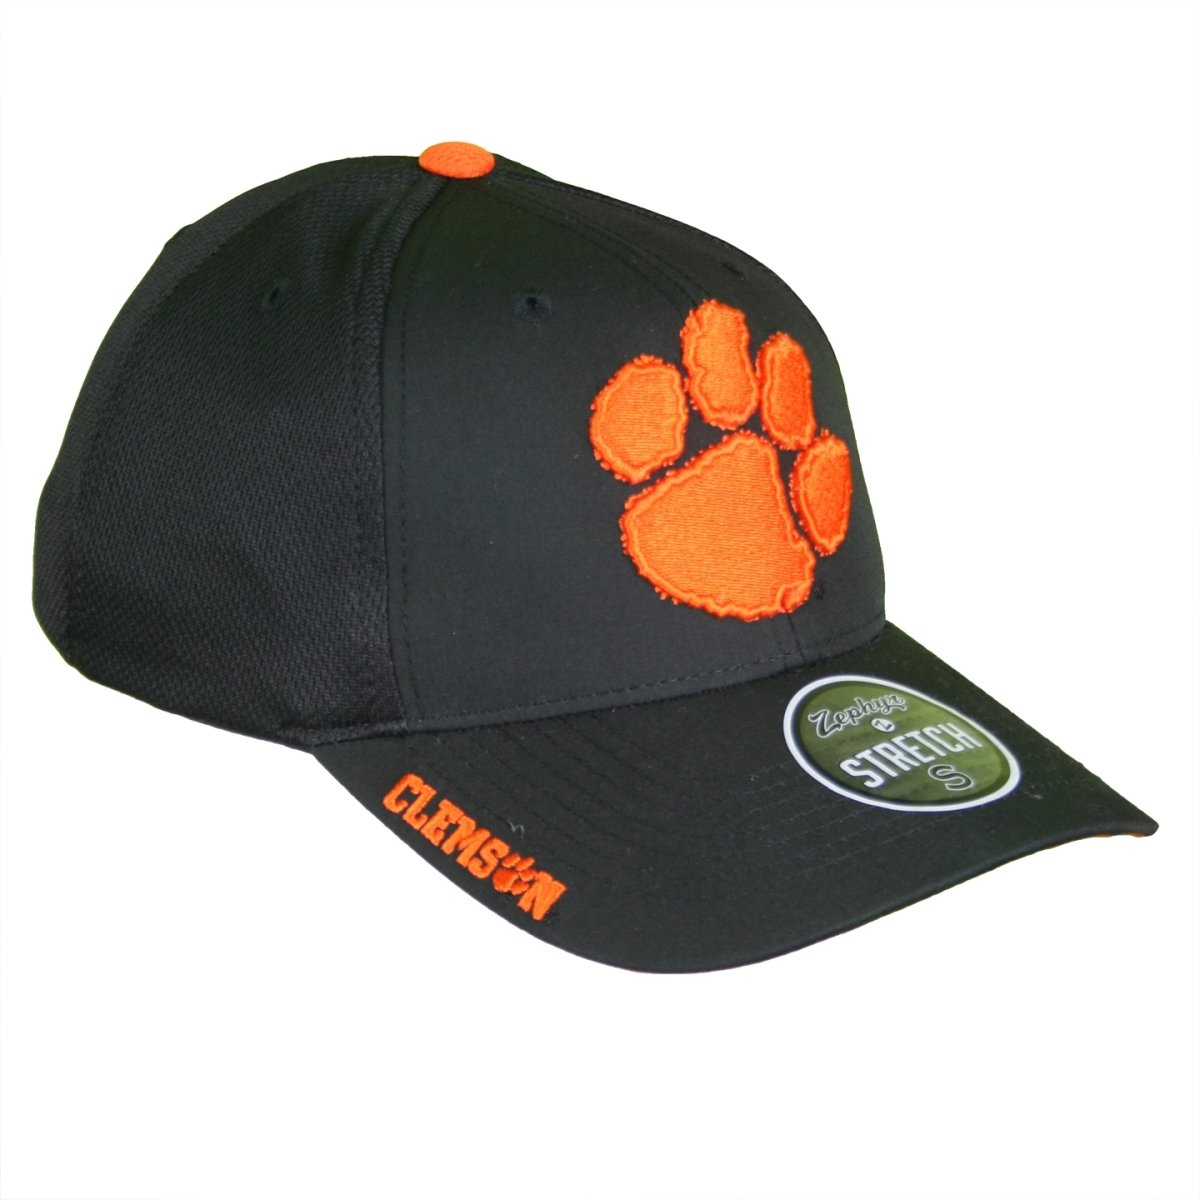 Clemson Tigers Stretch Fit Paw Print Stretch Fit Hat - Black - Mr. Knickerbocker